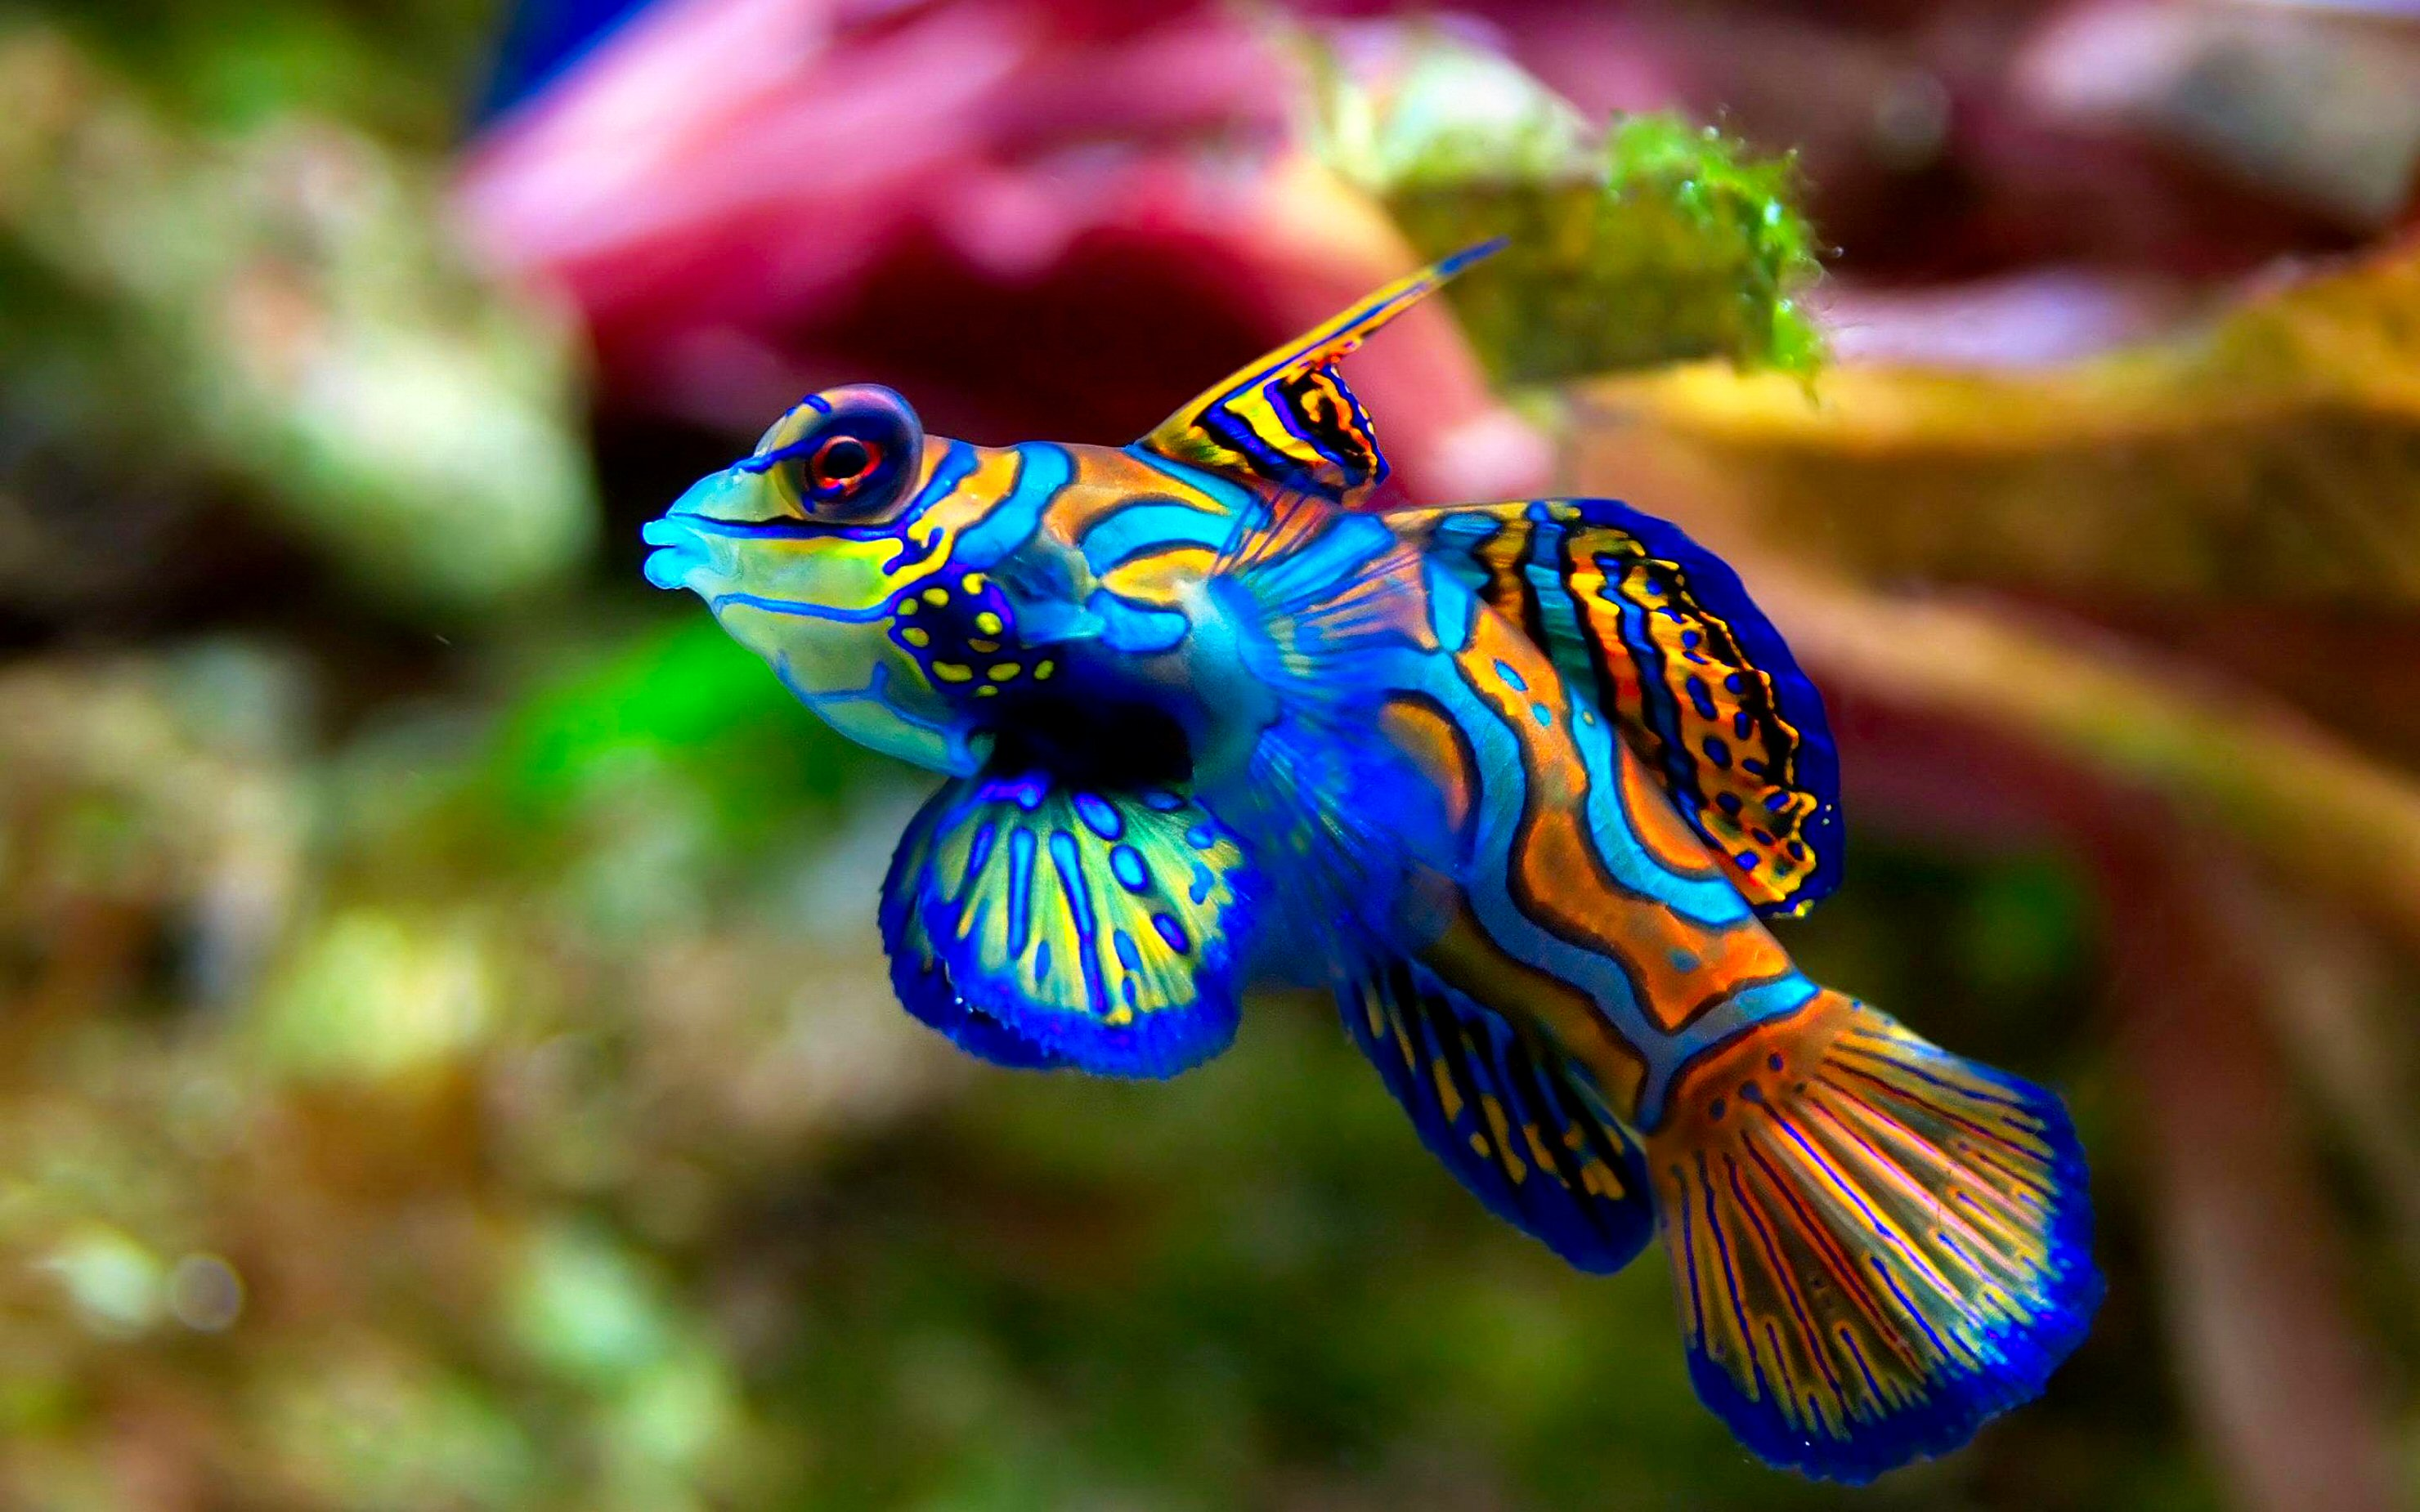 HD Wallpapers Of Fish